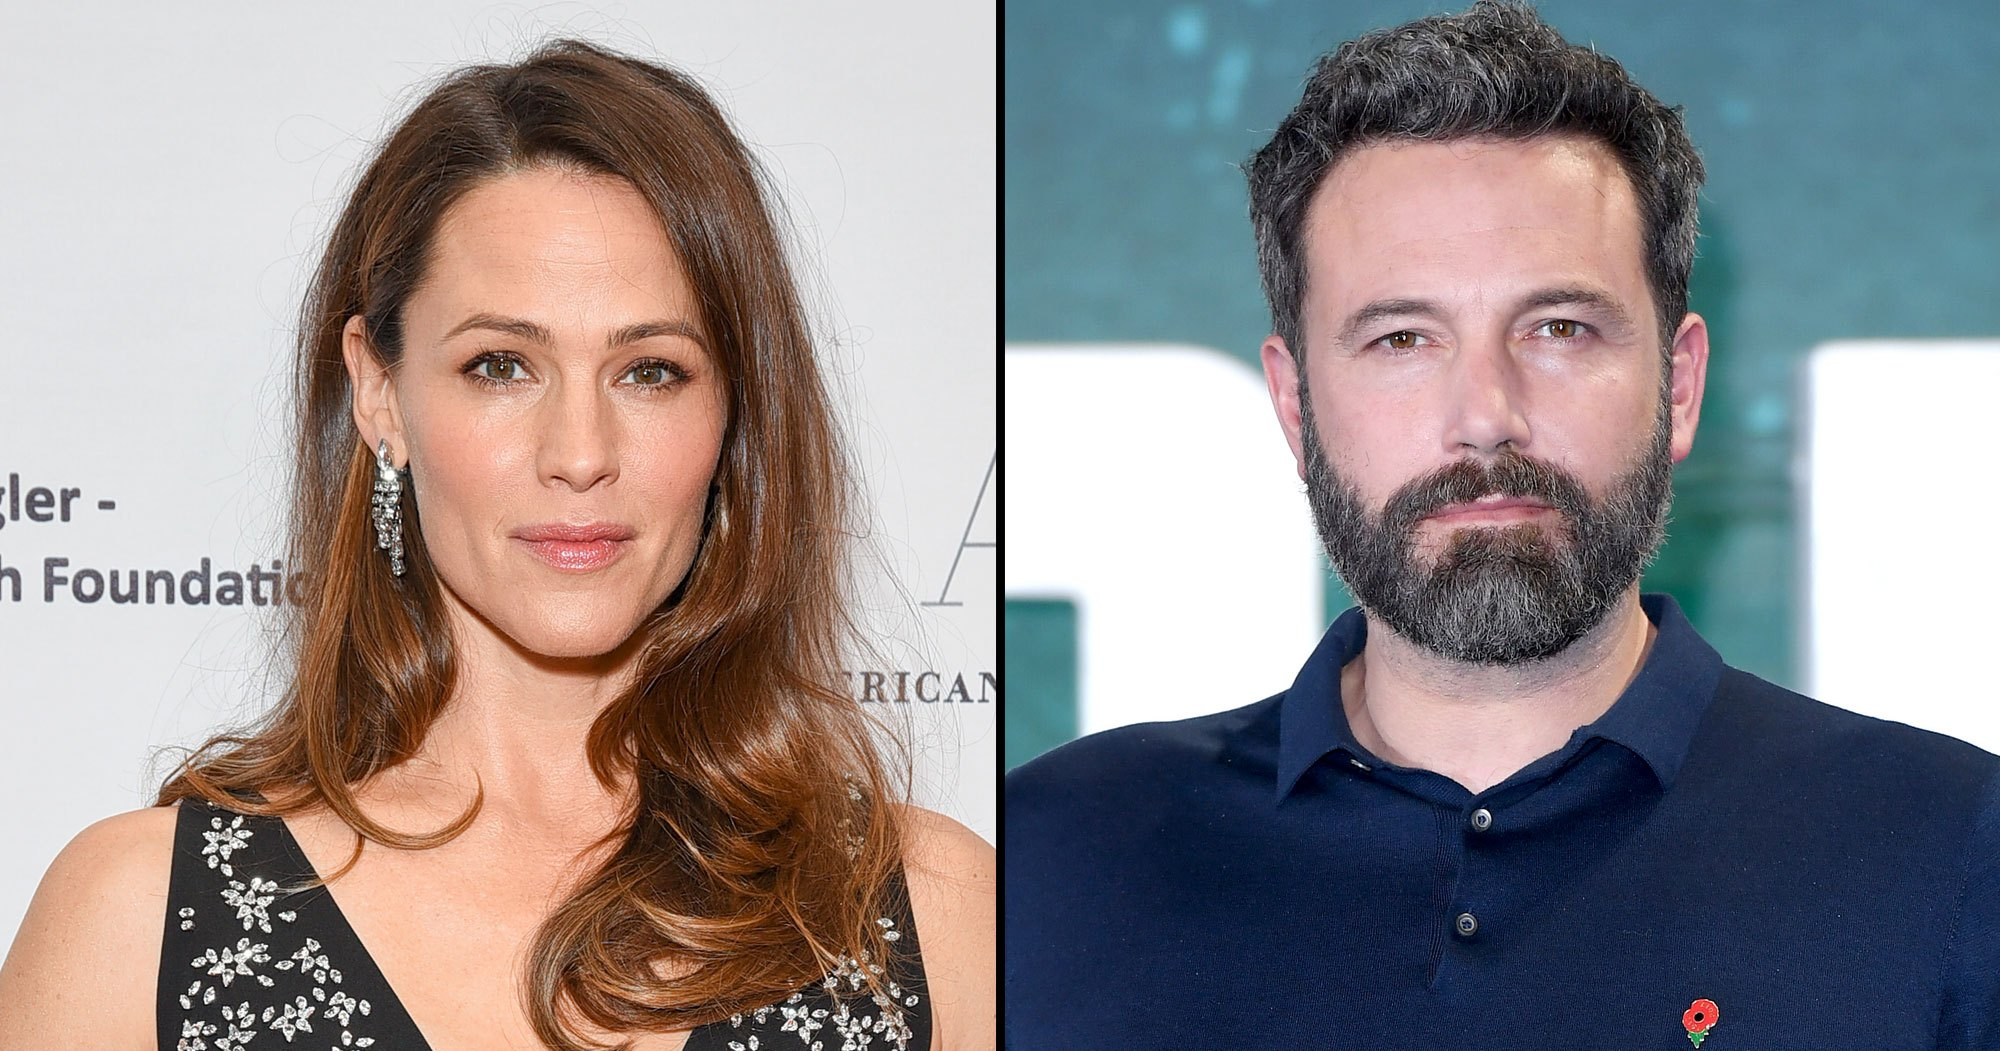 Jennifer Garner, Ben Affleck Raised Kids 'Surrounded by Paparazzi'